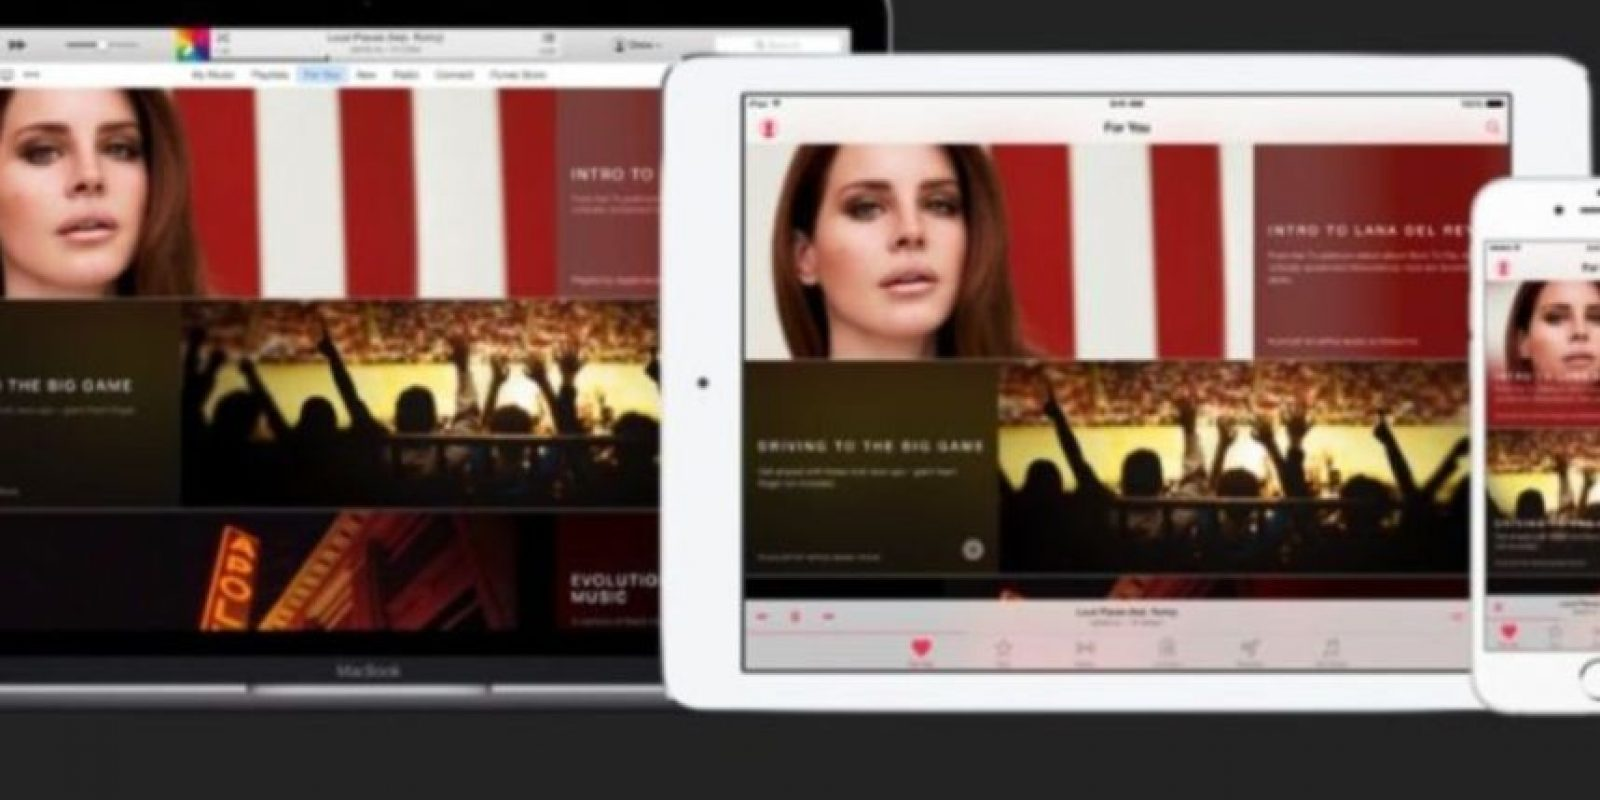 Apple Music ya está disponible para dispositivos móviles de Apple con iOS 8.4 o iTunes 12.2. Foto: Apple